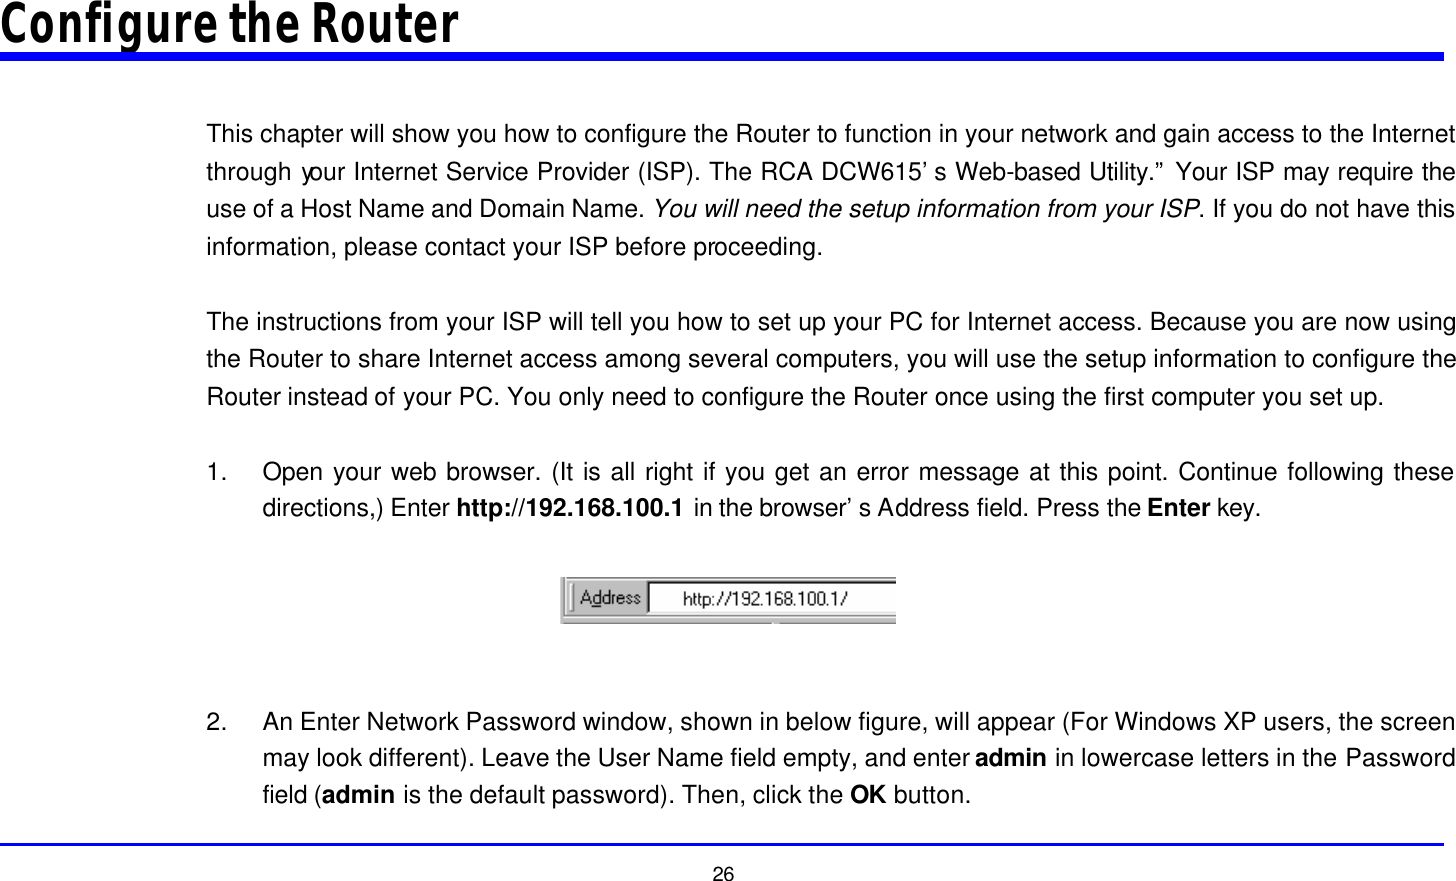 """26 Configure the Router  This chapter will show you how to configure the Router to function in your network and gain access to the Internet through your Internet Service Provider (ISP). The RCA DCW615's Web-based Utility."""" Your ISP may require the use of a Host Name and Domain Name. You will need the setup information from your ISP. If you do not have this information, please contact your ISP before proceeding.  The instructions from your ISP will tell you how to set up your PC for Internet access. Because you are now using the Router to share Internet access among several computers, you will use the setup information to configure the Router instead of your PC. You only need to configure the Router once using the first computer you set up.  1. Open your web browser. (It is all right if you get an error message at this point. Continue following these directions,) Enter http://192.168.100.1 in the browser's Address field. Press the Enter key.    2. An Enter Network Password window, shown in below figure, will appear (For Windows XP users, the screen may look different). Leave the User Name field empty, and enter admin in lowercase letters in the Password field (admin is the default password). Then, click the OK button."""